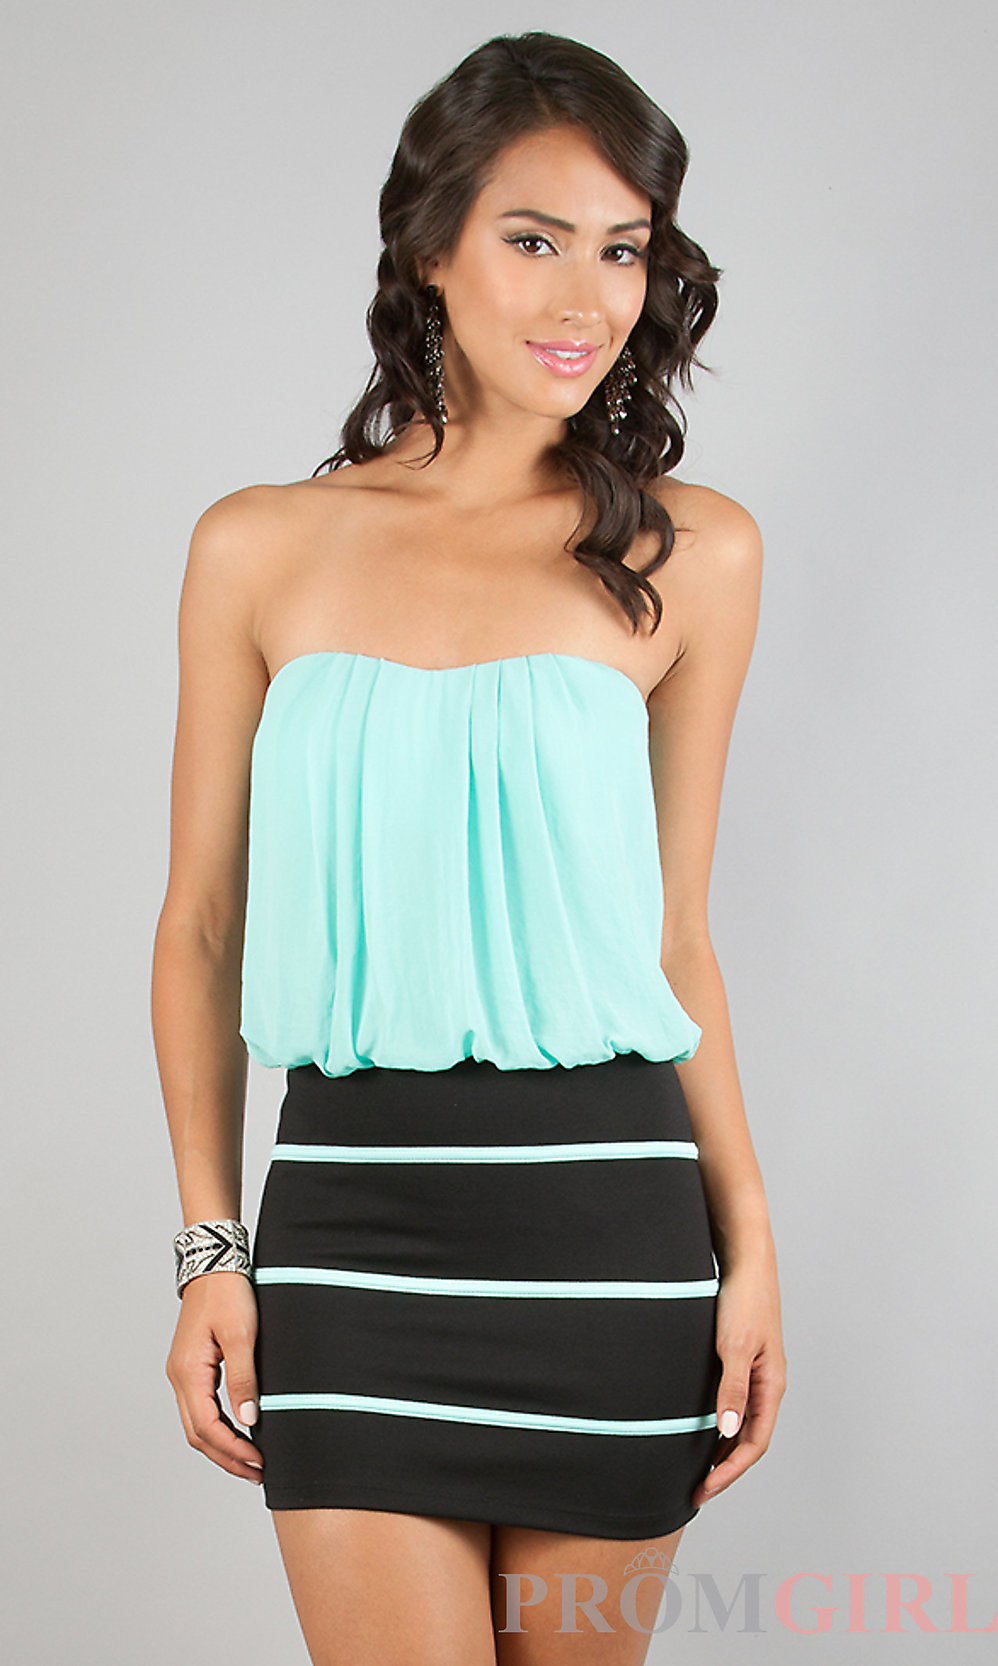 short casual strapless dress from promgirl